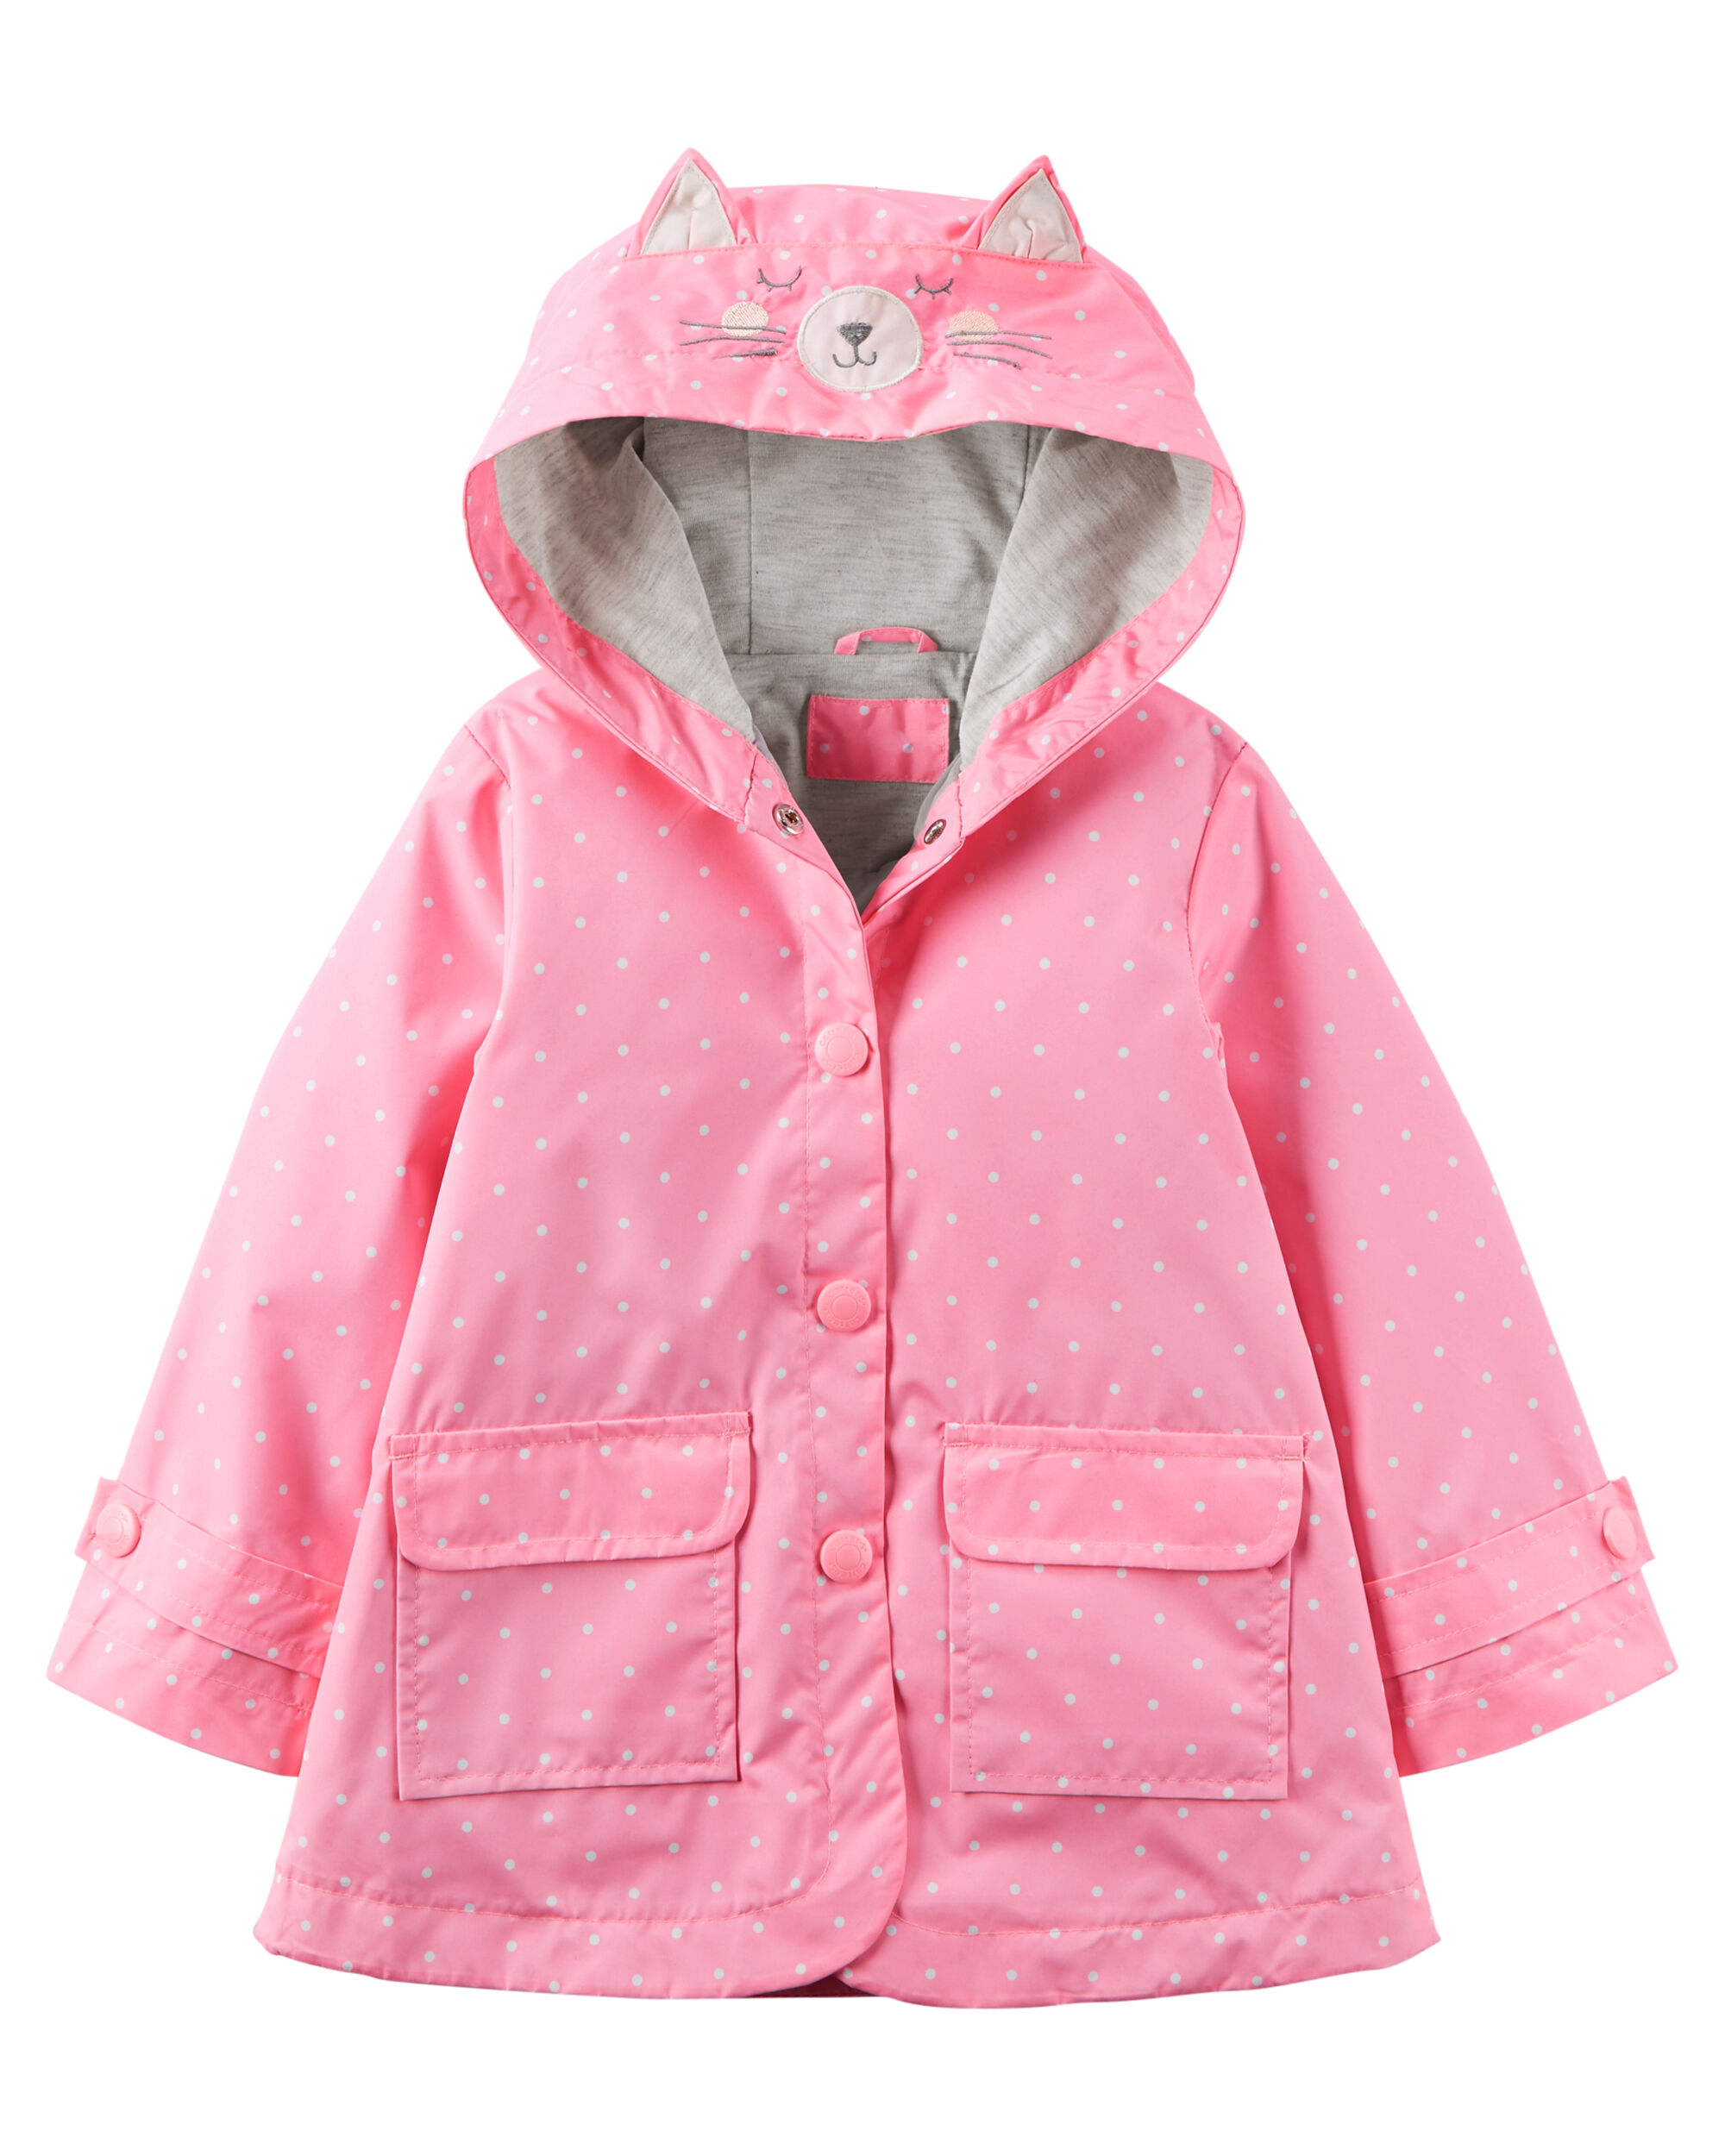 Girls Rain Coats. Cloudy with a chance of showers? Gear up your little girl in the cutest raincoats. She'll love splashing through puddles in adorable jackets and slickers in her favorite colors. Rainy Day Fun.